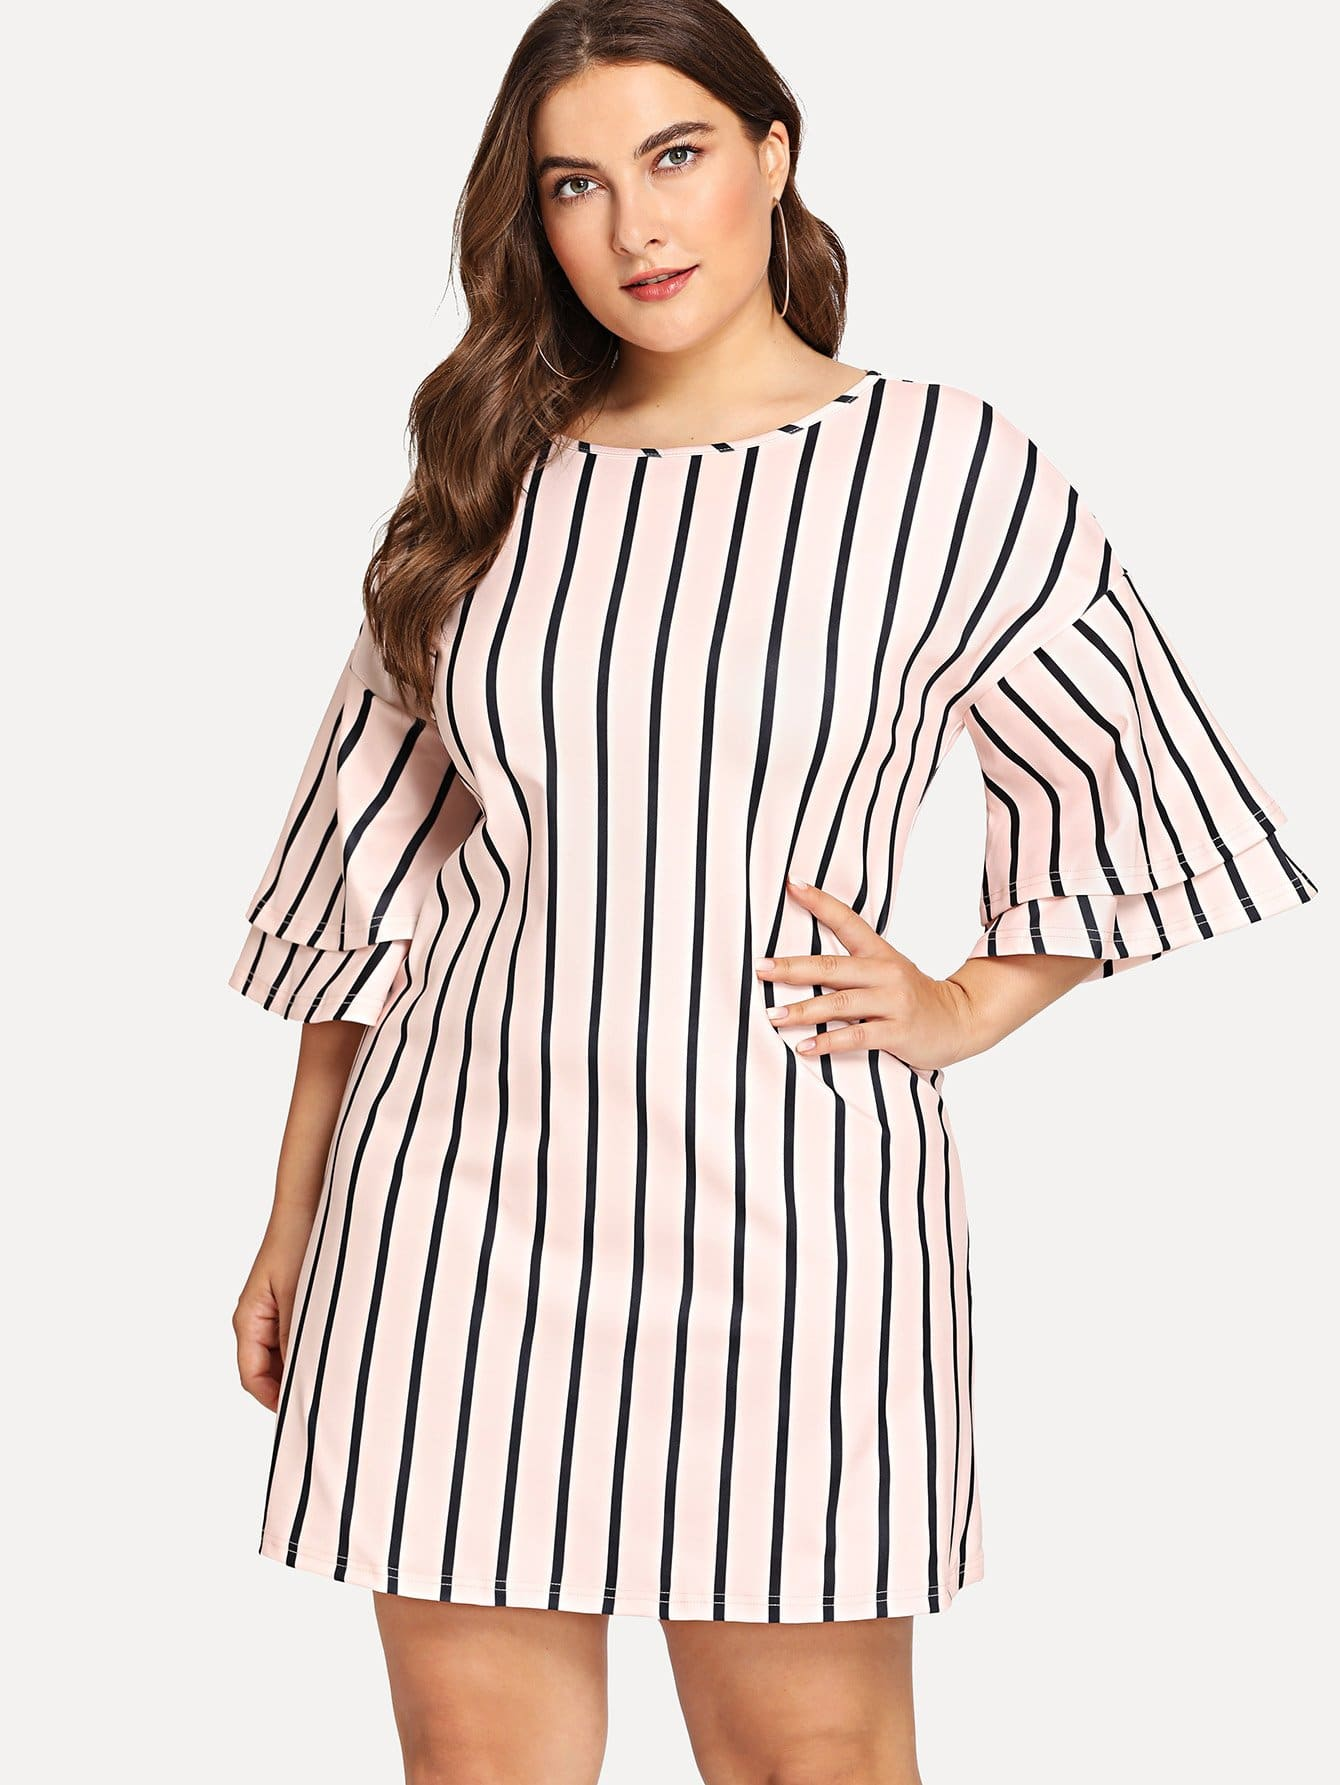 Layered Sleeve Striped Dress